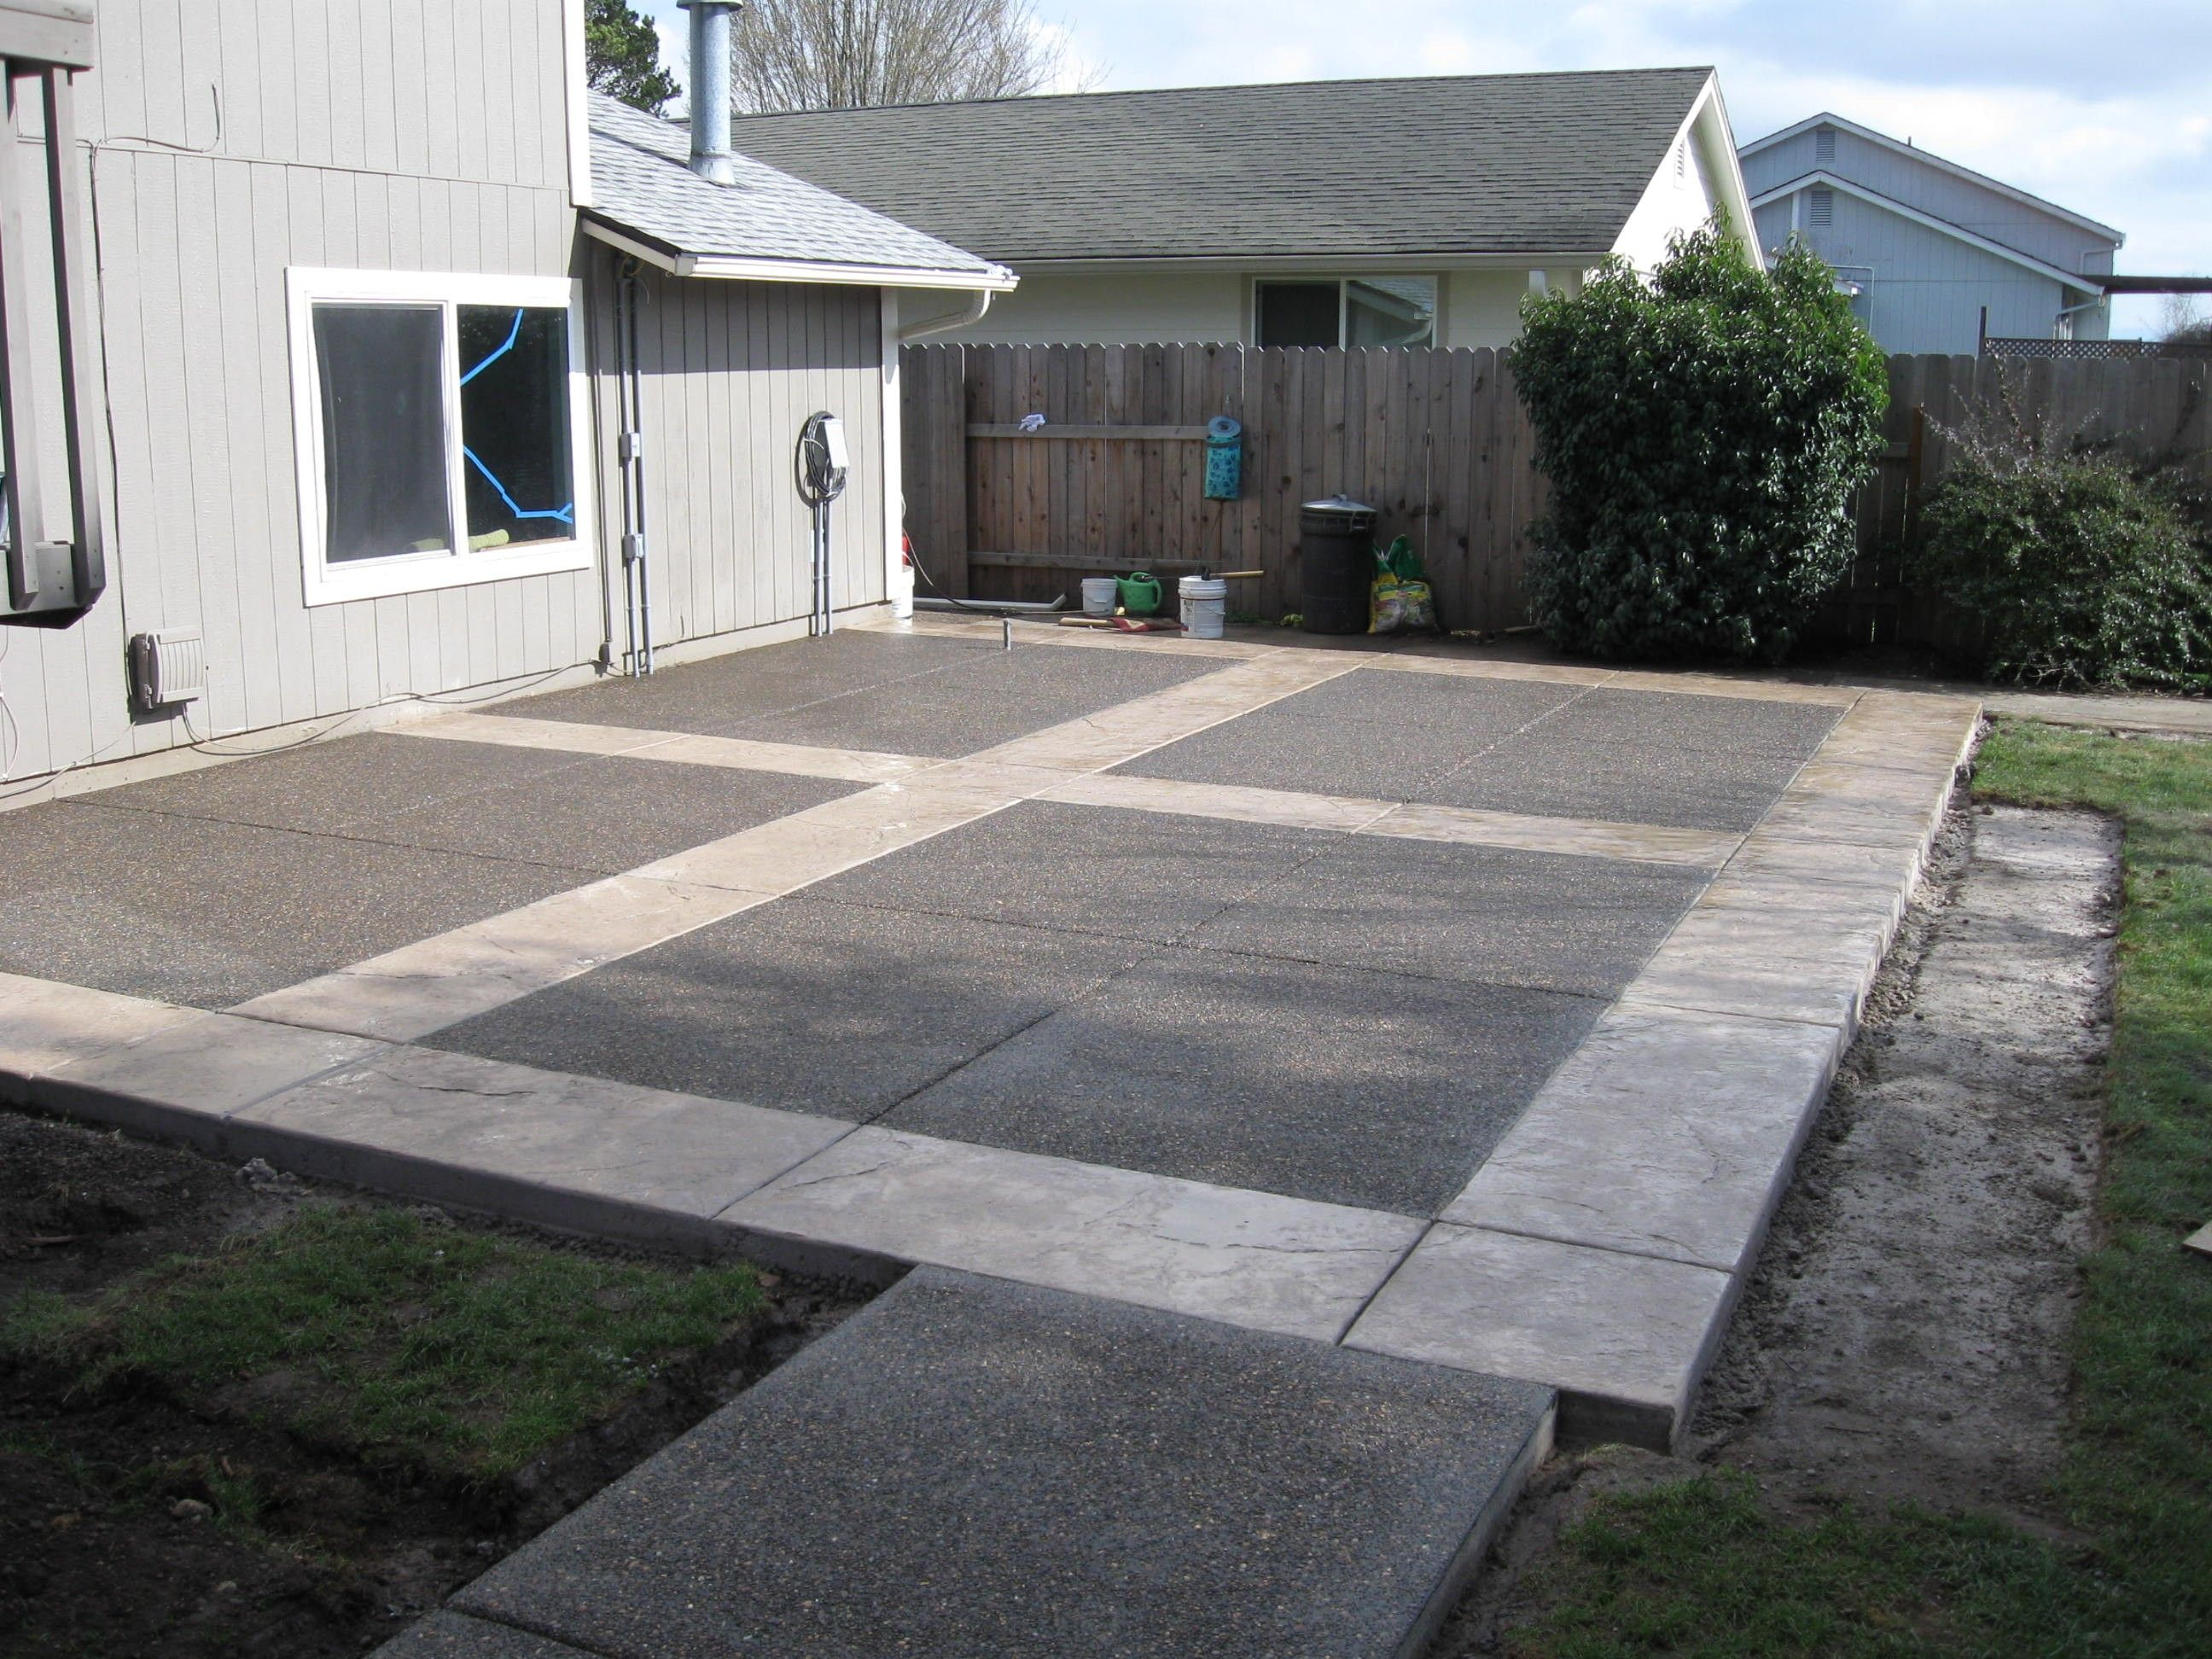 Easy Cement Backyards Google Search Backyard Cement Patio regarding Concrete Patio Ideas Backyard